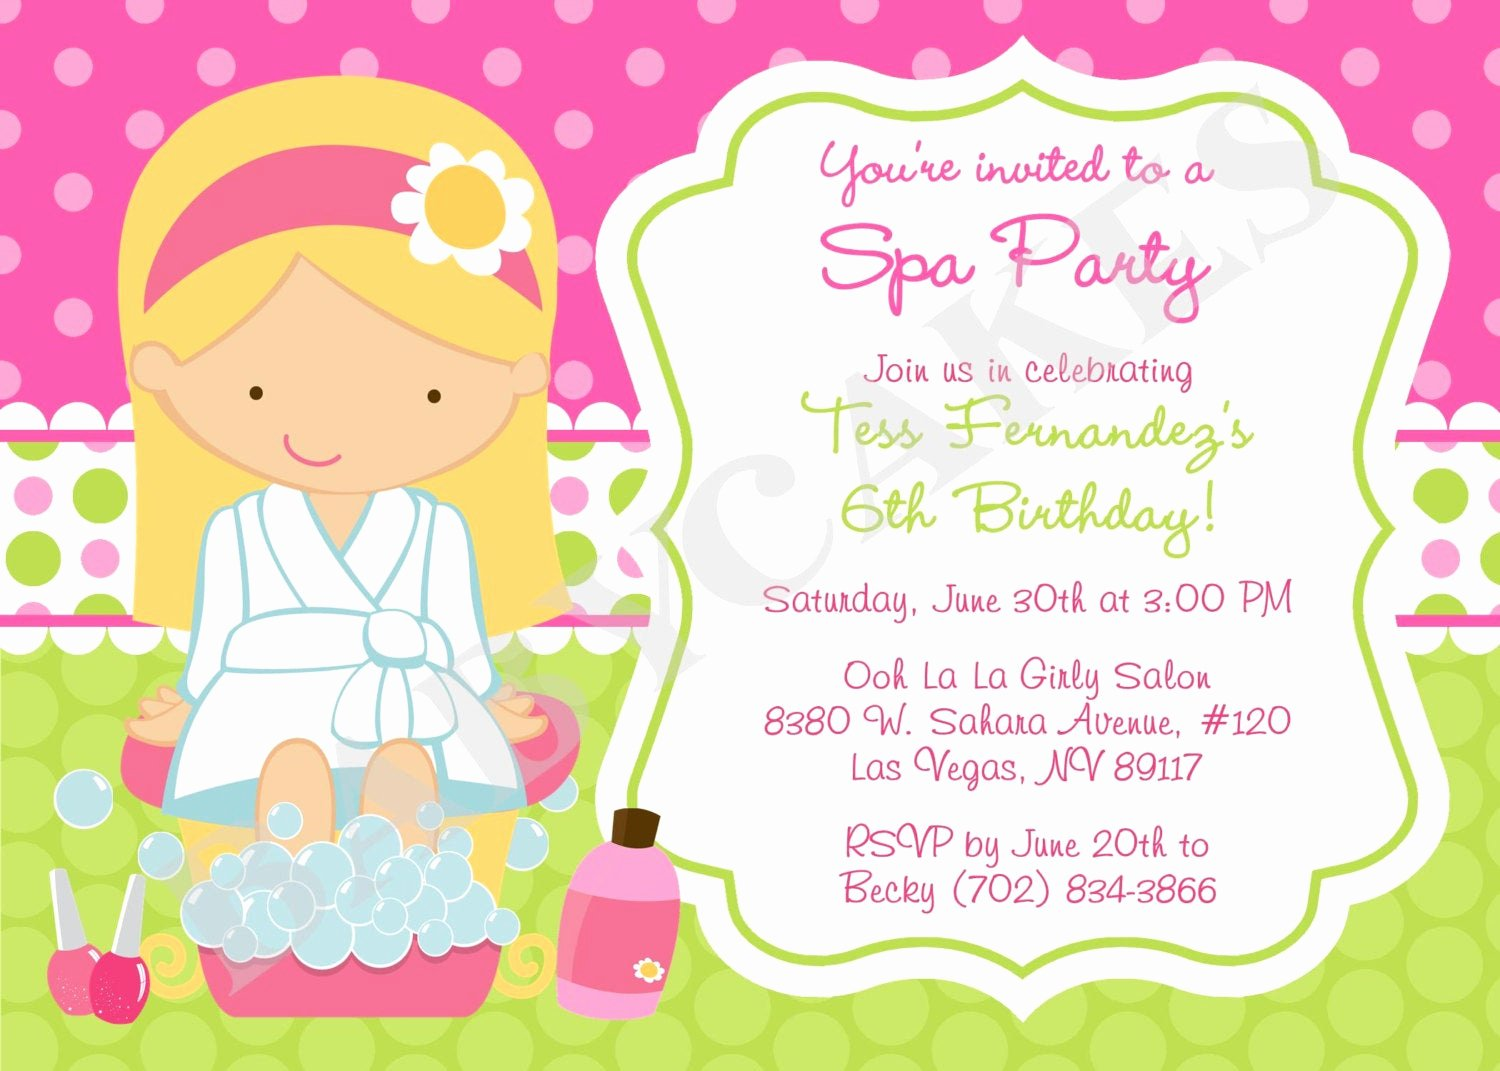 Girls Spa Party Invitations Luxury Spa Party Birthday Invitation Invite Spa Birthday by Jcbabycakes